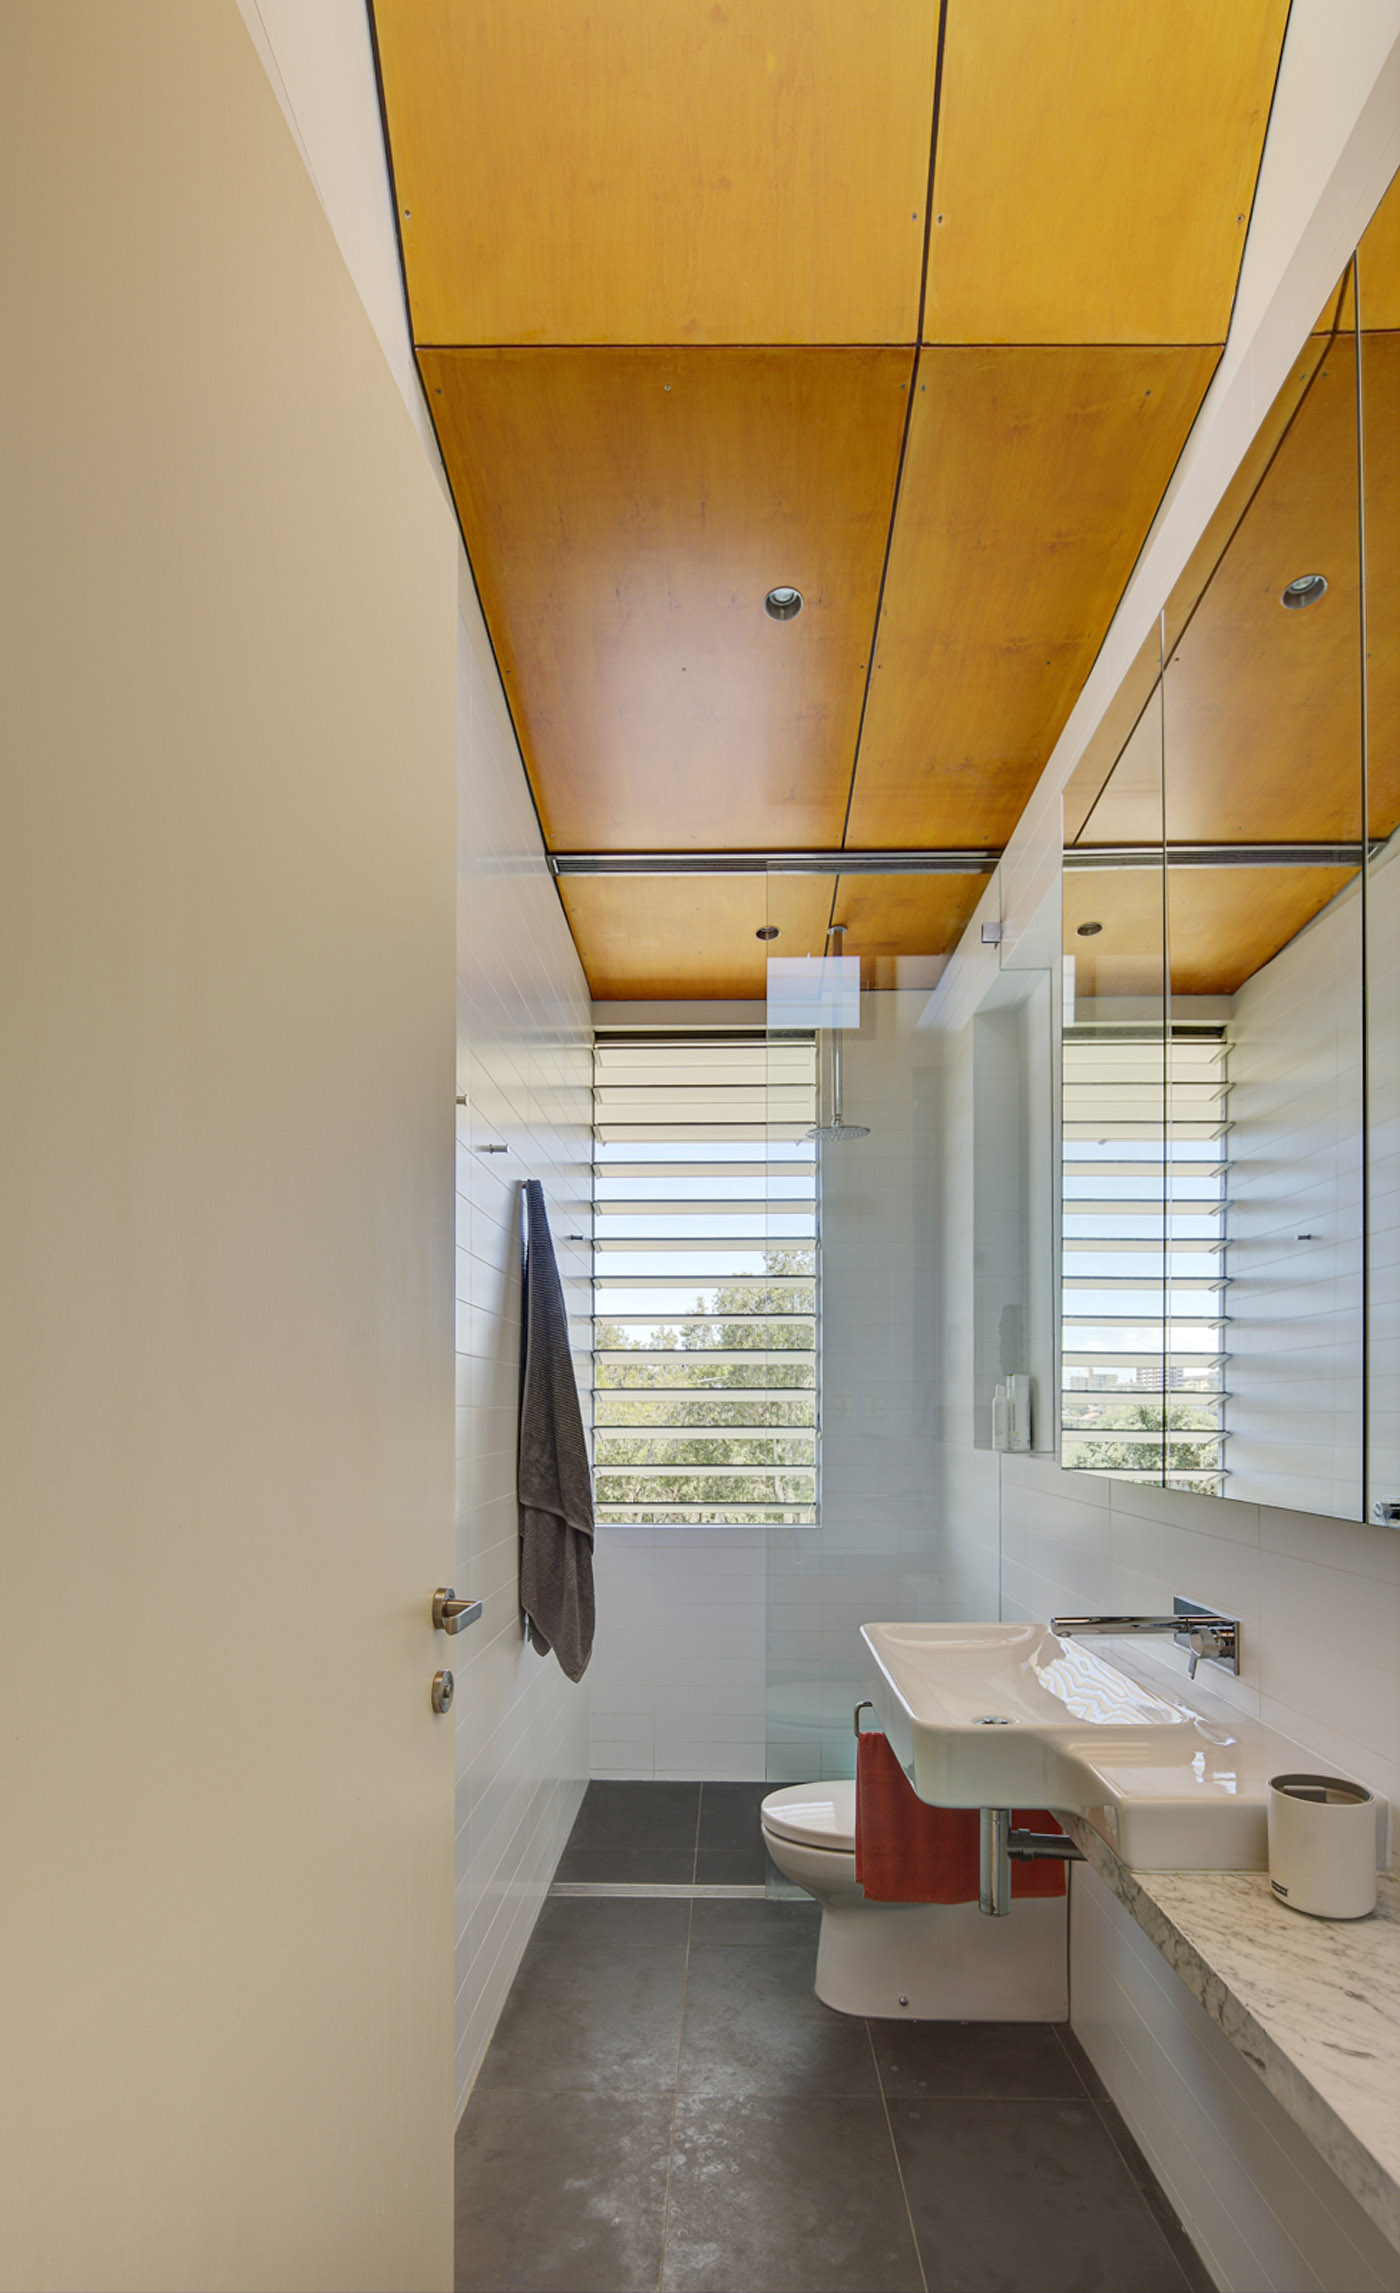 Salgo Kitching House by Sydney award winning architecture office Sam Crawford Architects. View of simple bathroom featuring brigh timber ceiling lining